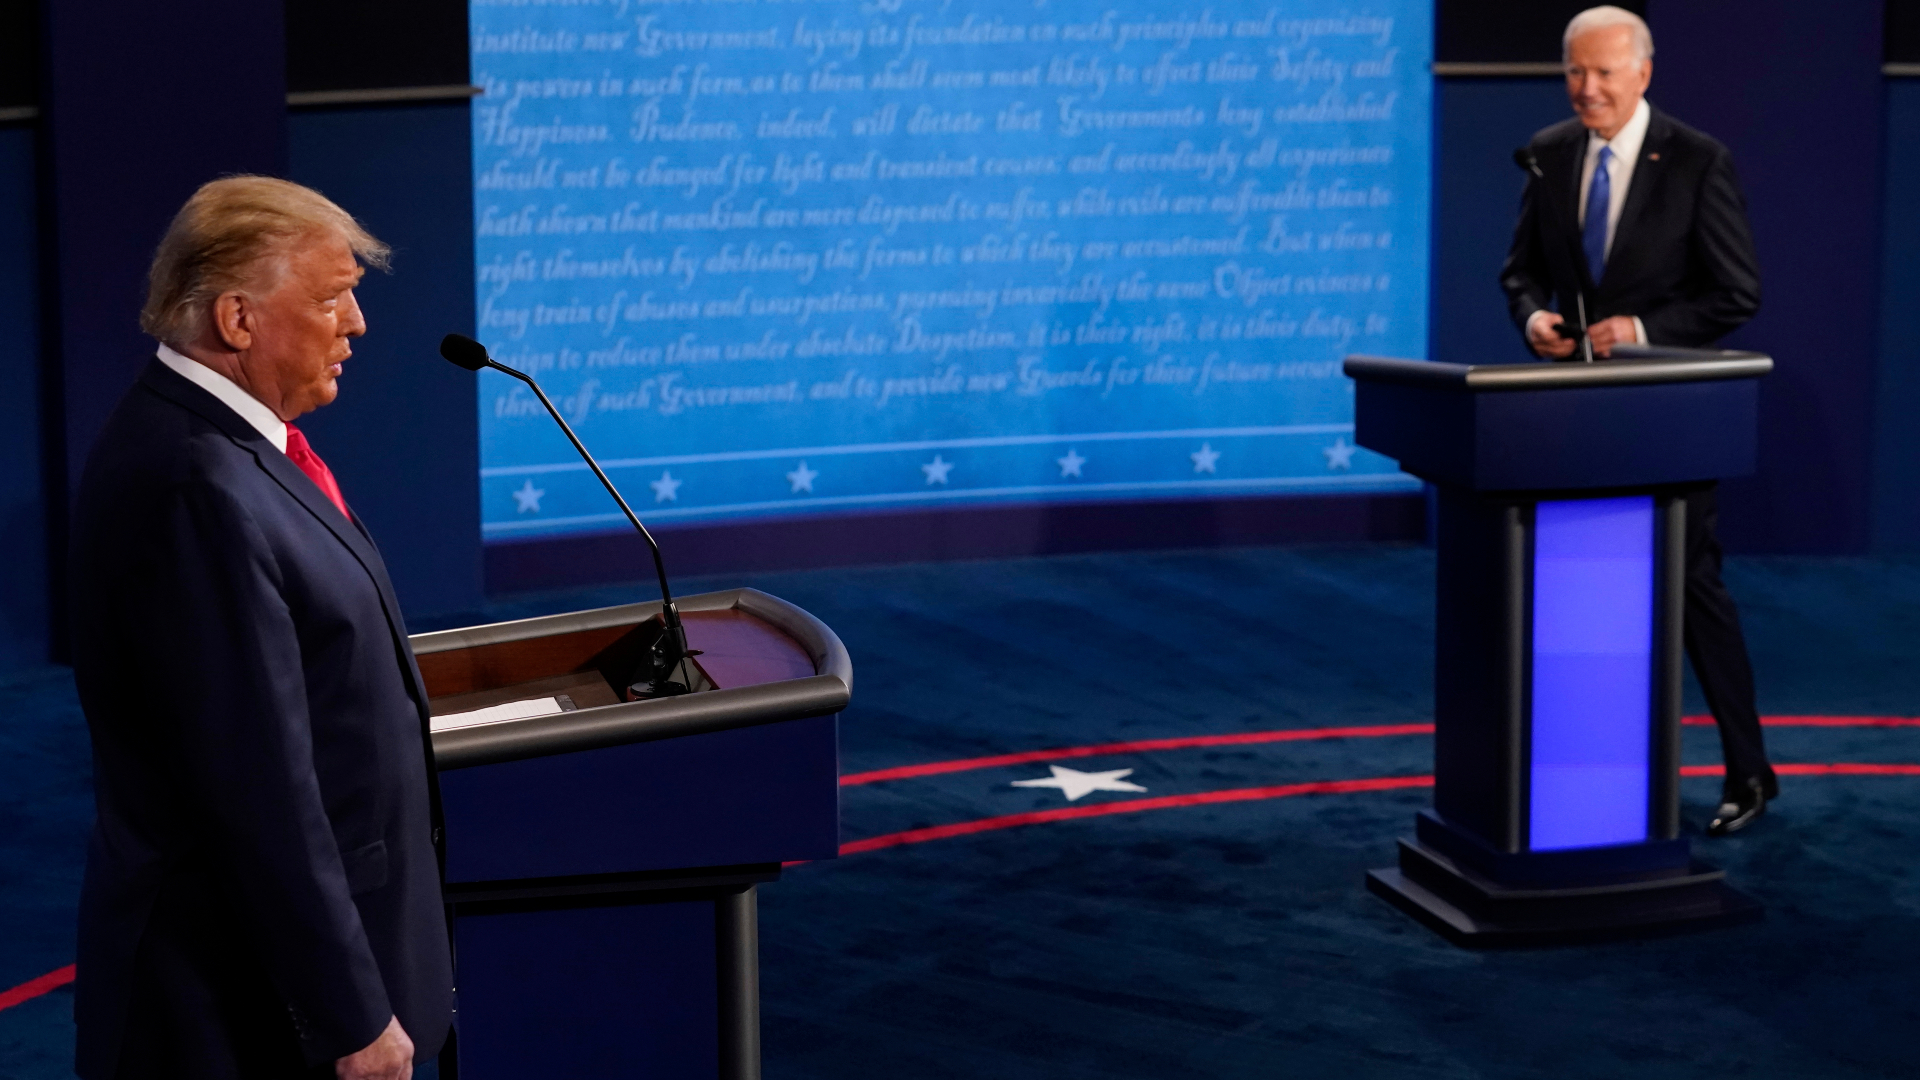 President Donald Trump and Democratic presidential candidate former Vice President Joe Biden walk on stage during the second and final presidential debate at Belmont University in Nashville, Tennessee, on Oct. 22, 2020. (Morry Gash / Associated Press)